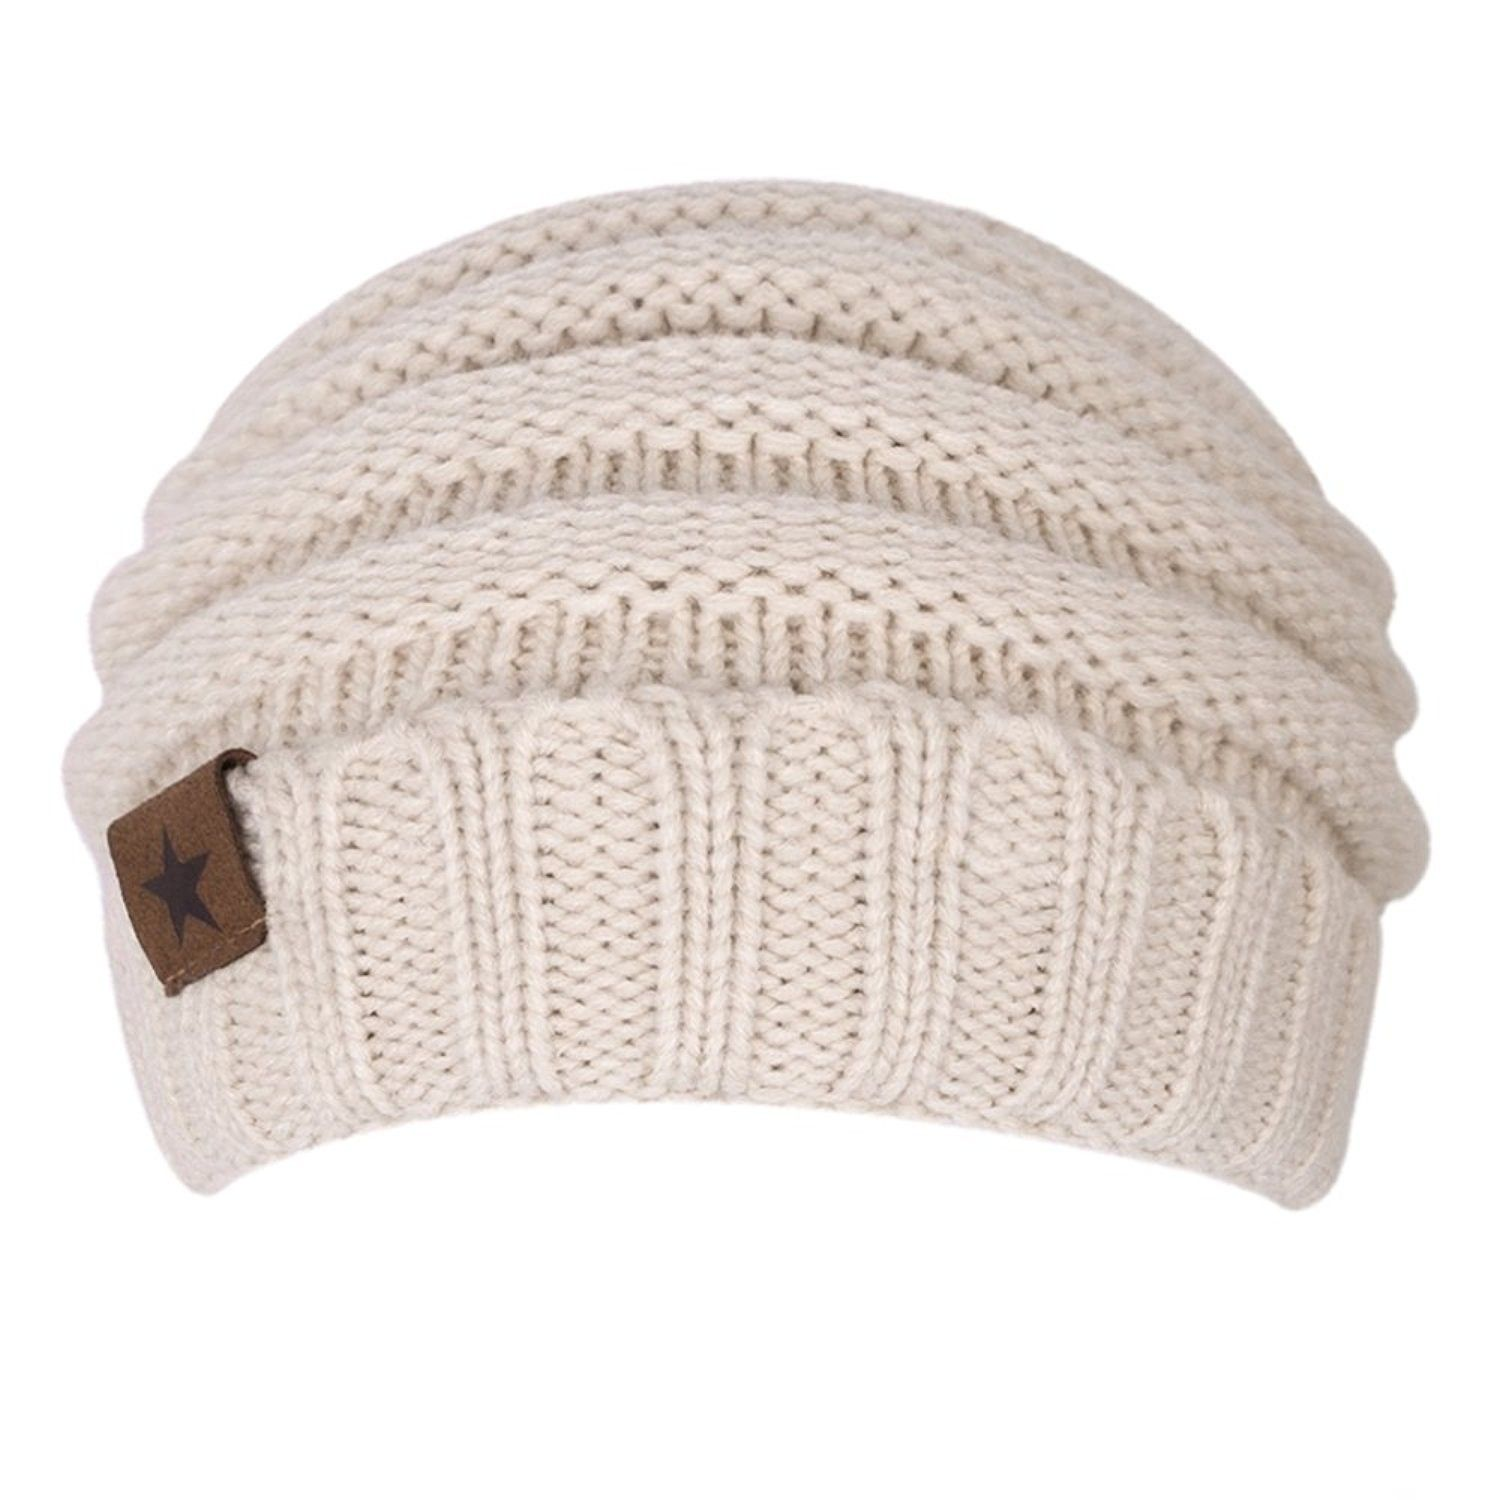 Beanie Hat- Women s Winter Fleece Lined Cable Knitted Beanie Hat - Beige -  C8186G4GY52 - Hats   Caps 21ae57ccecb